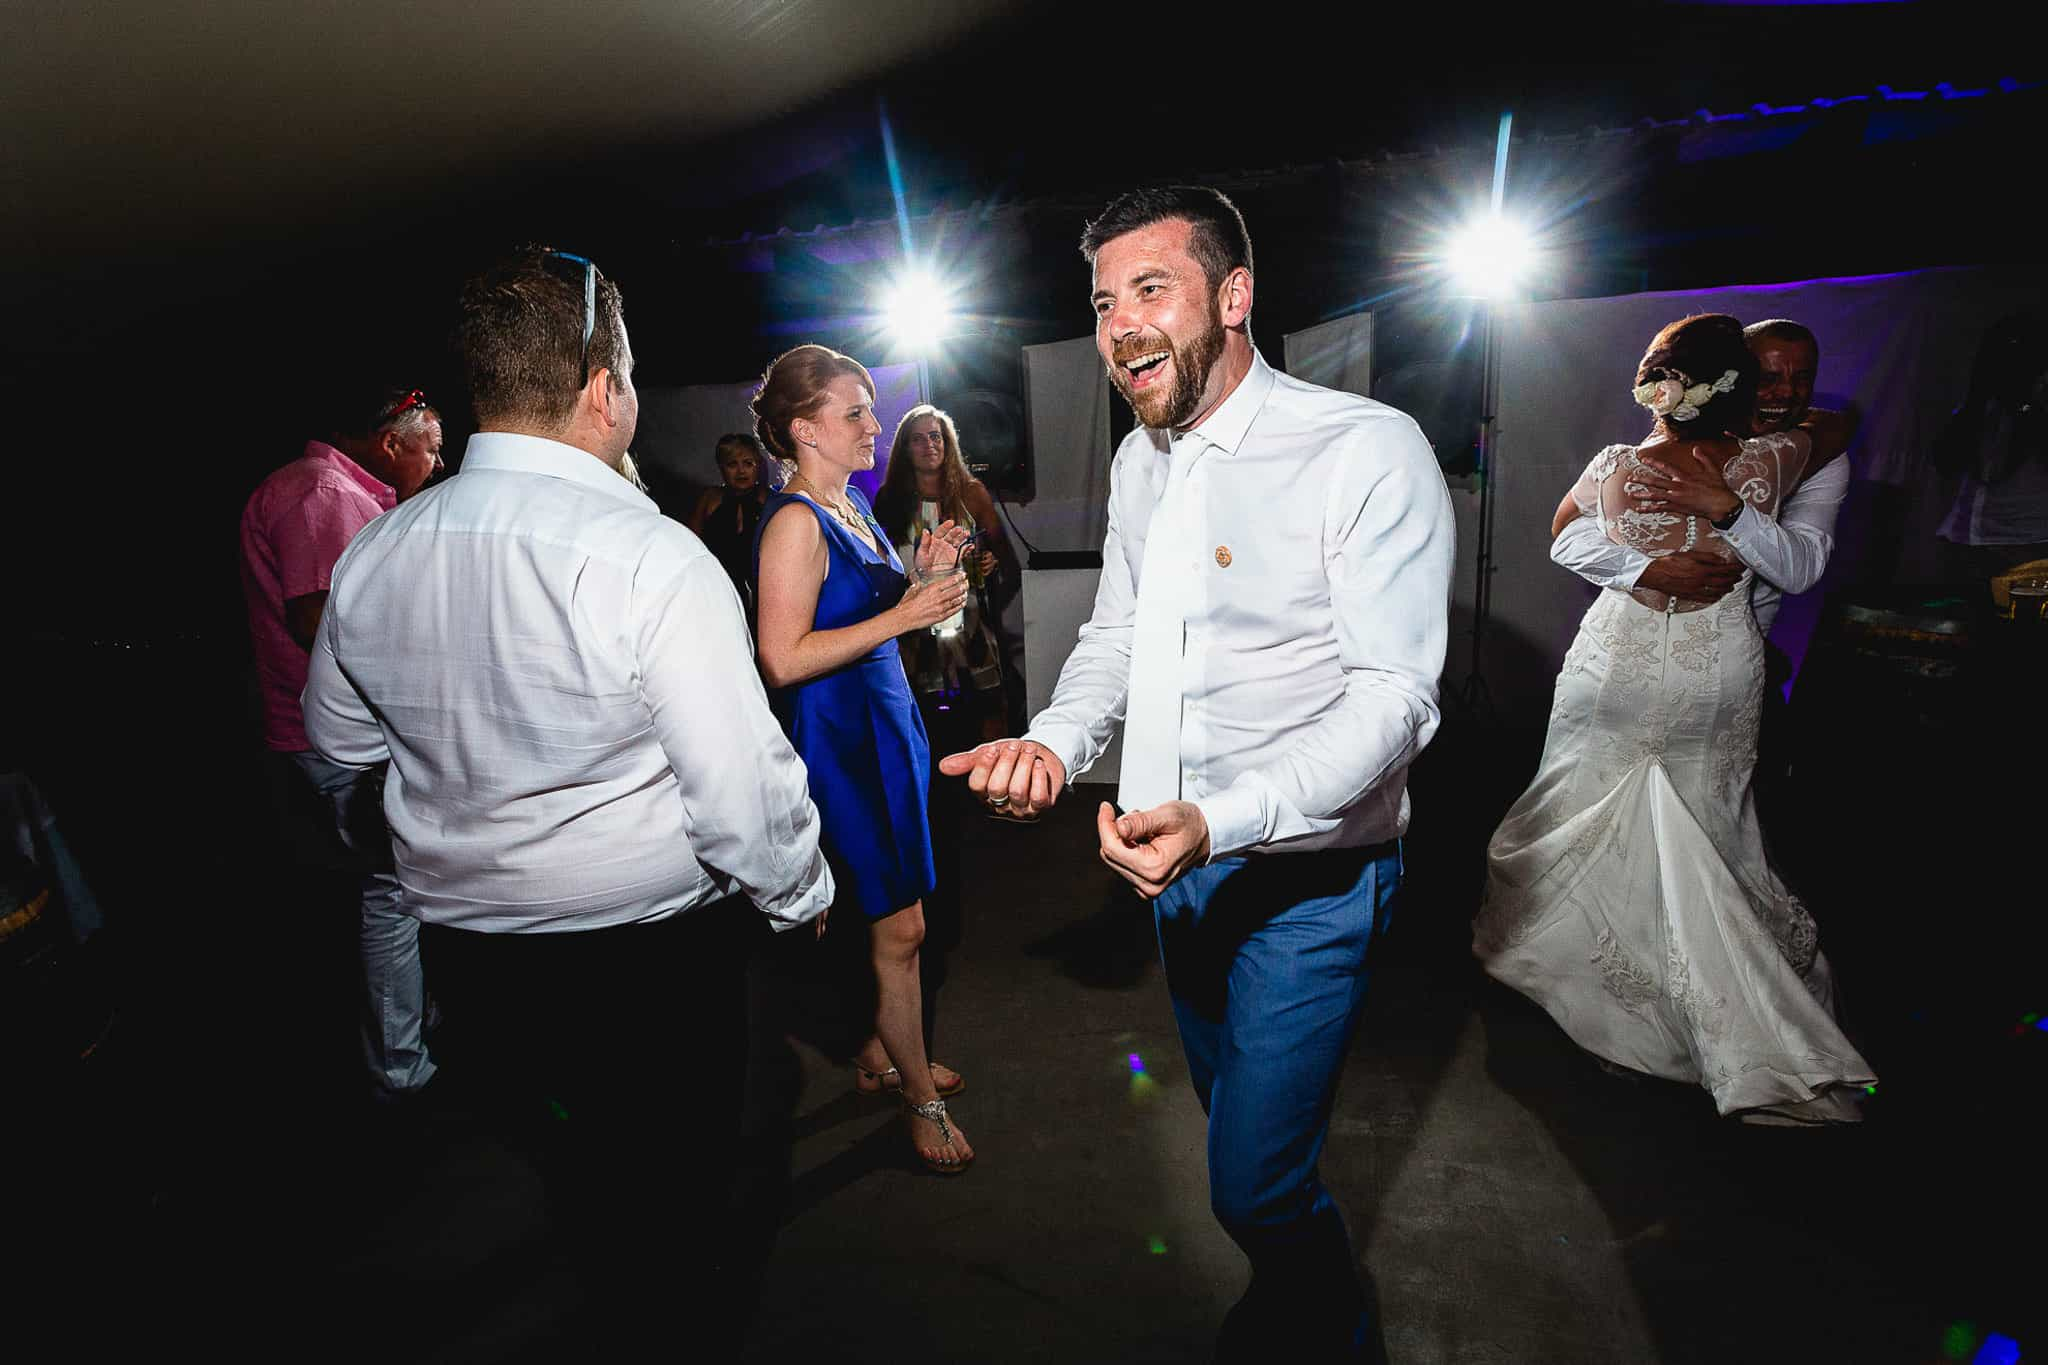 CD_WEDDING_0484